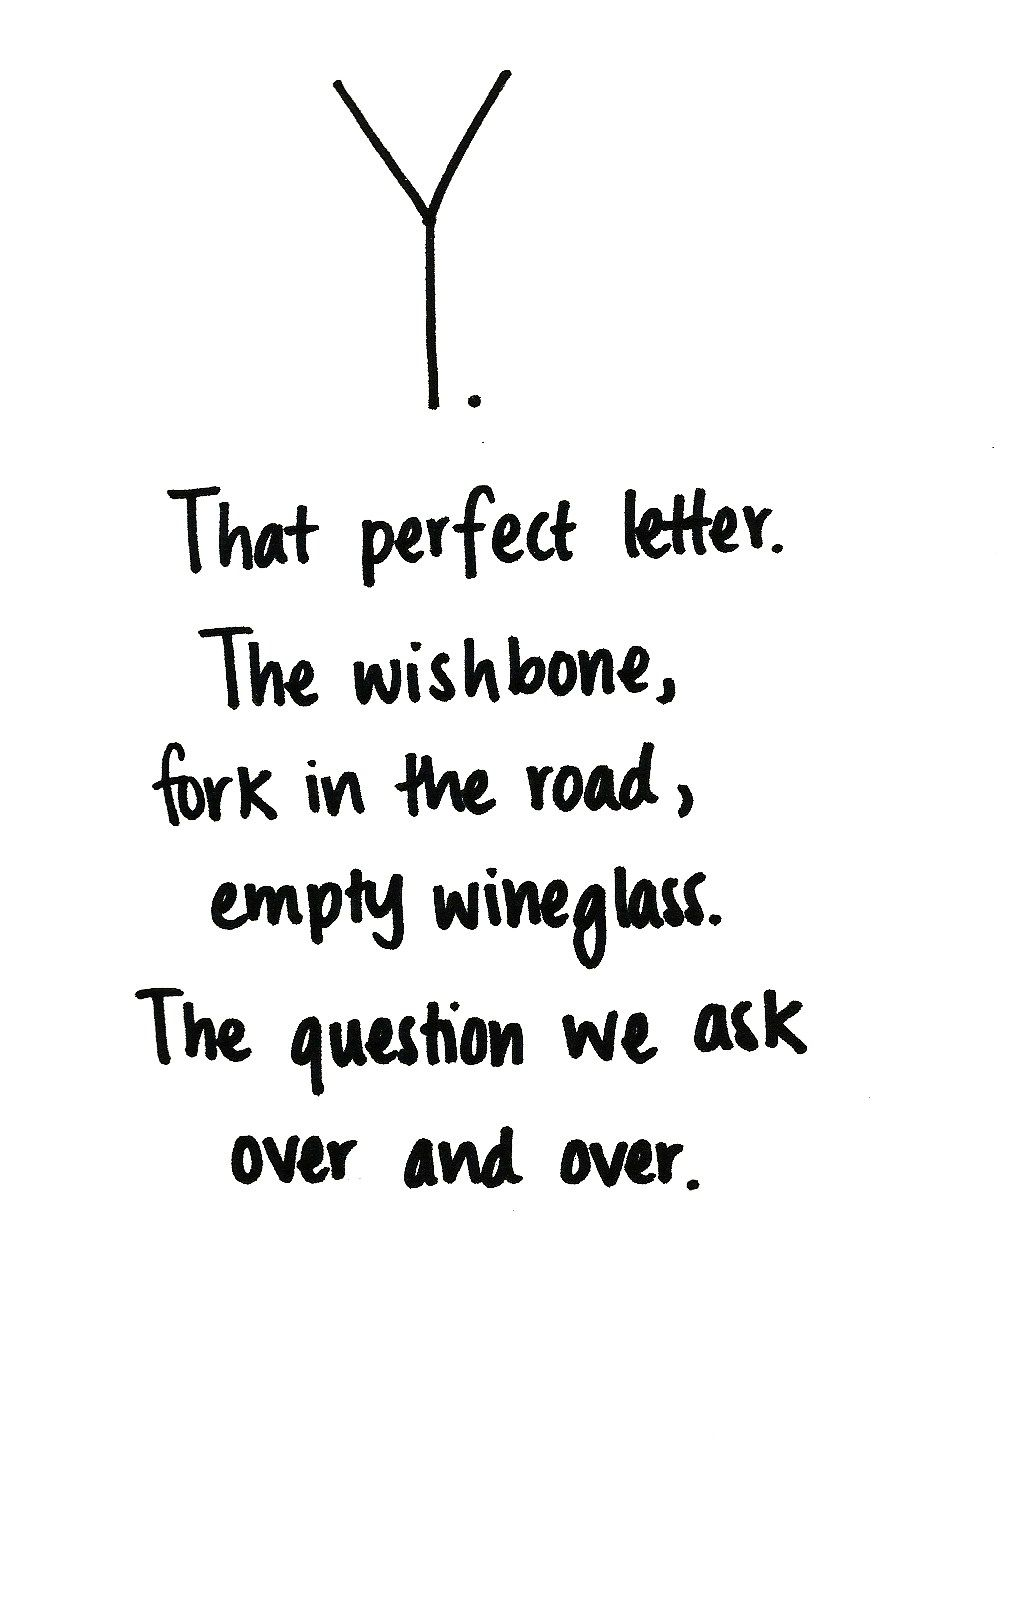 Y the perfect letter the wishbone fork in the road empty wineglass the question we ask over and over